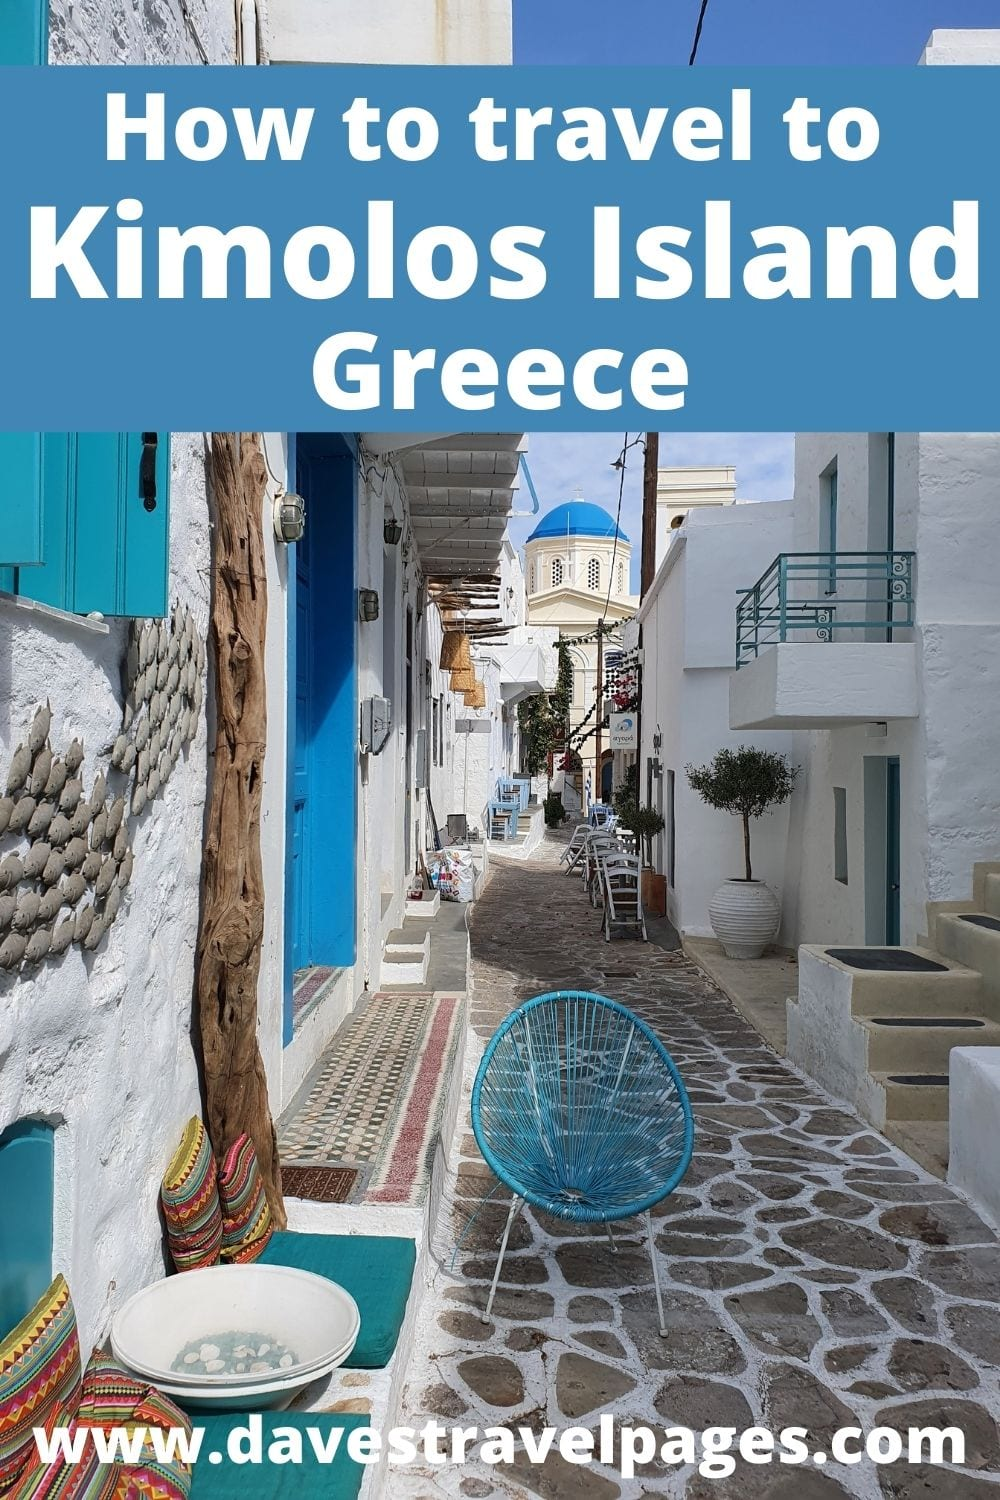 How to travel to Kimolos island from Athens in Greece